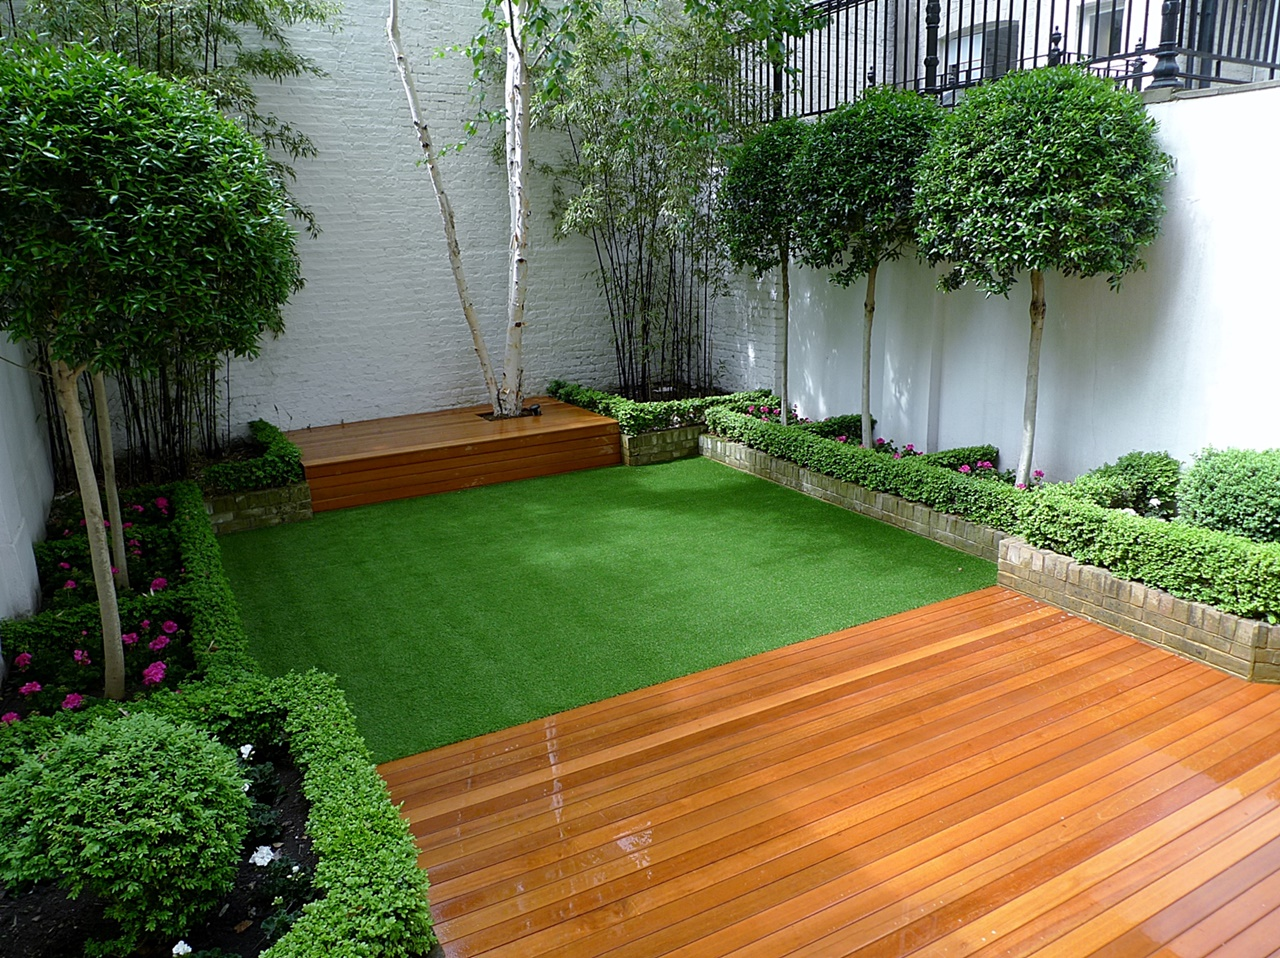 Screen london garden design part 2 for Modern garden decking designs